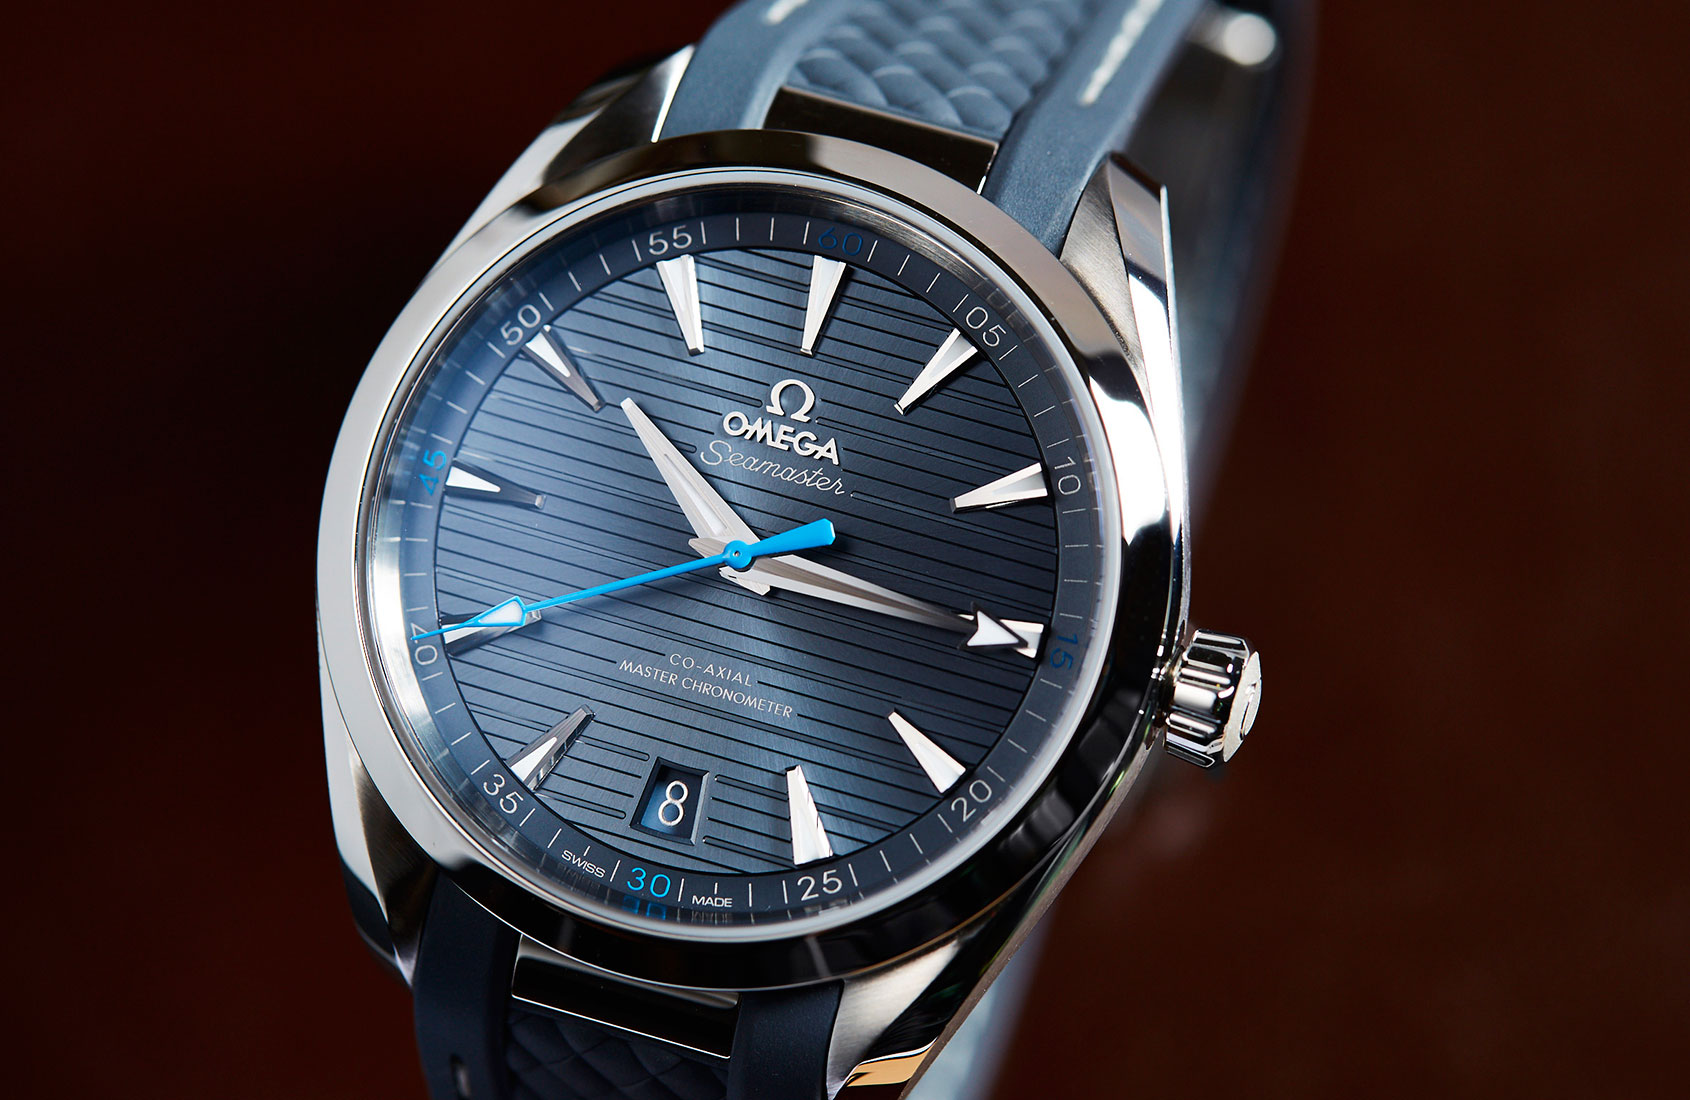 In Depth The Omega Seamaster Aqua Terra Master